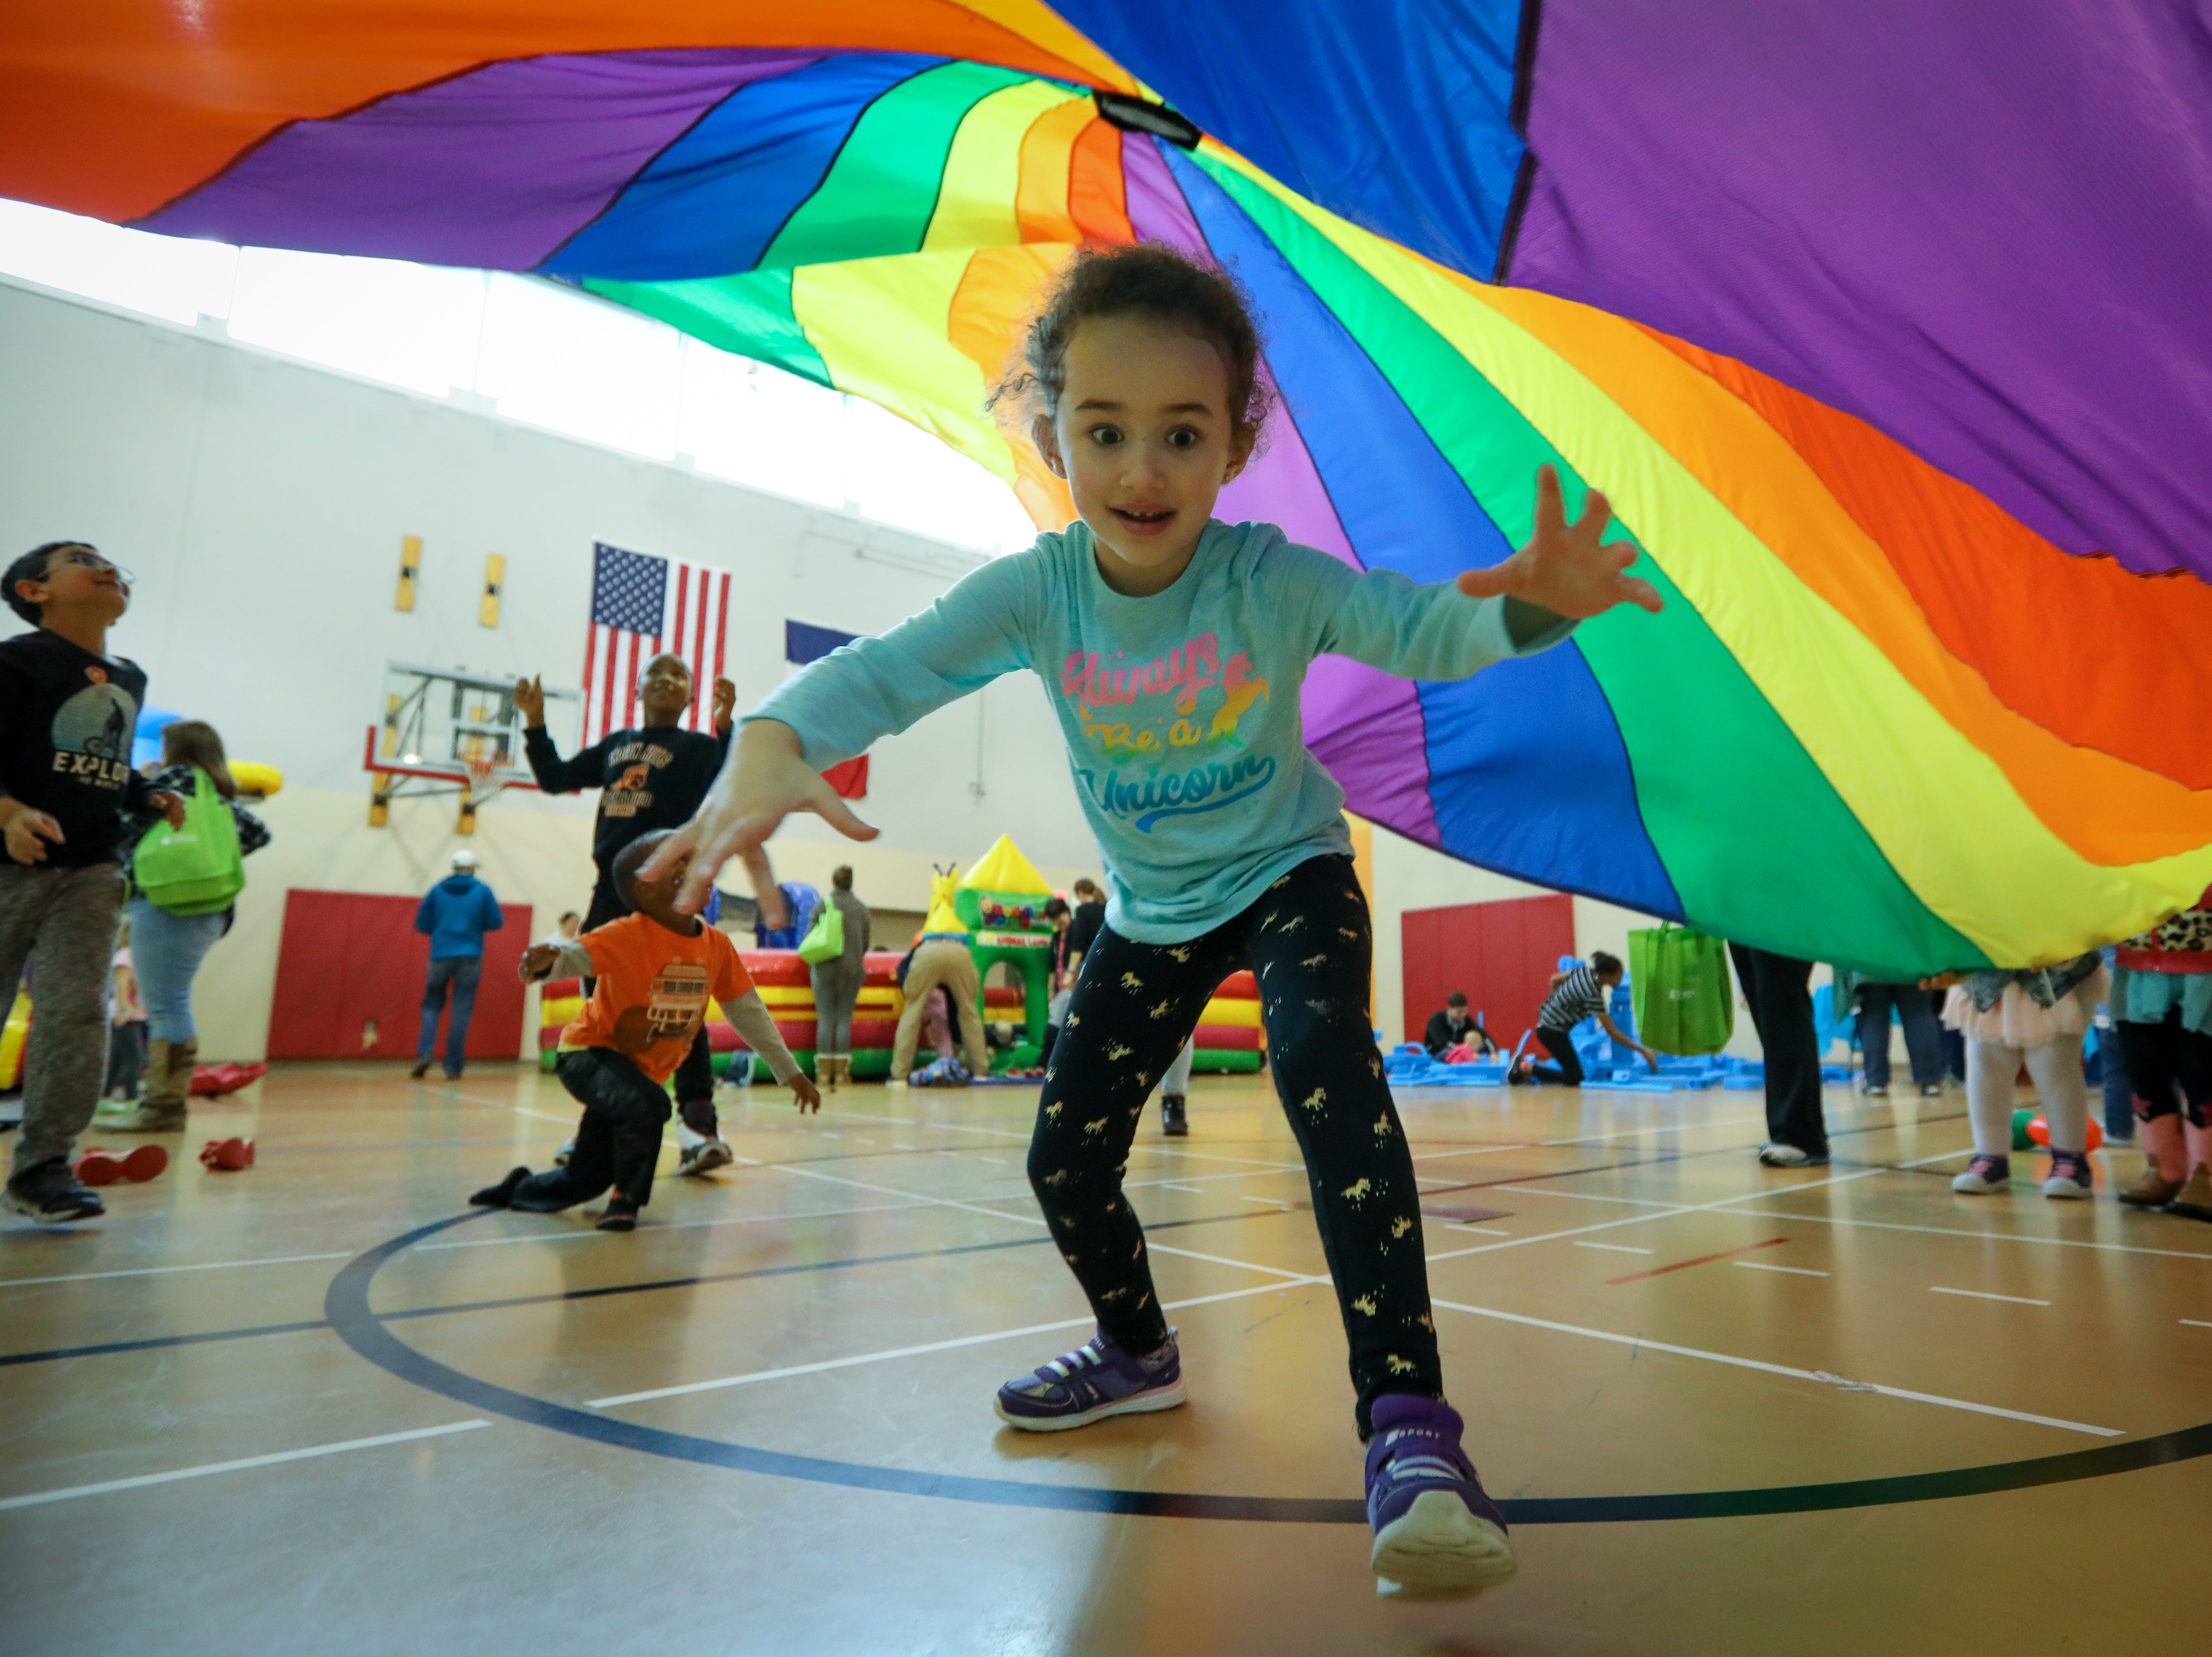 Maryam, 5, of West Des Moines participates in the Preschool Palooza at Hillside Elementary School on Saturday, Nov. 3, 2018 in Des Moines, Iowa.